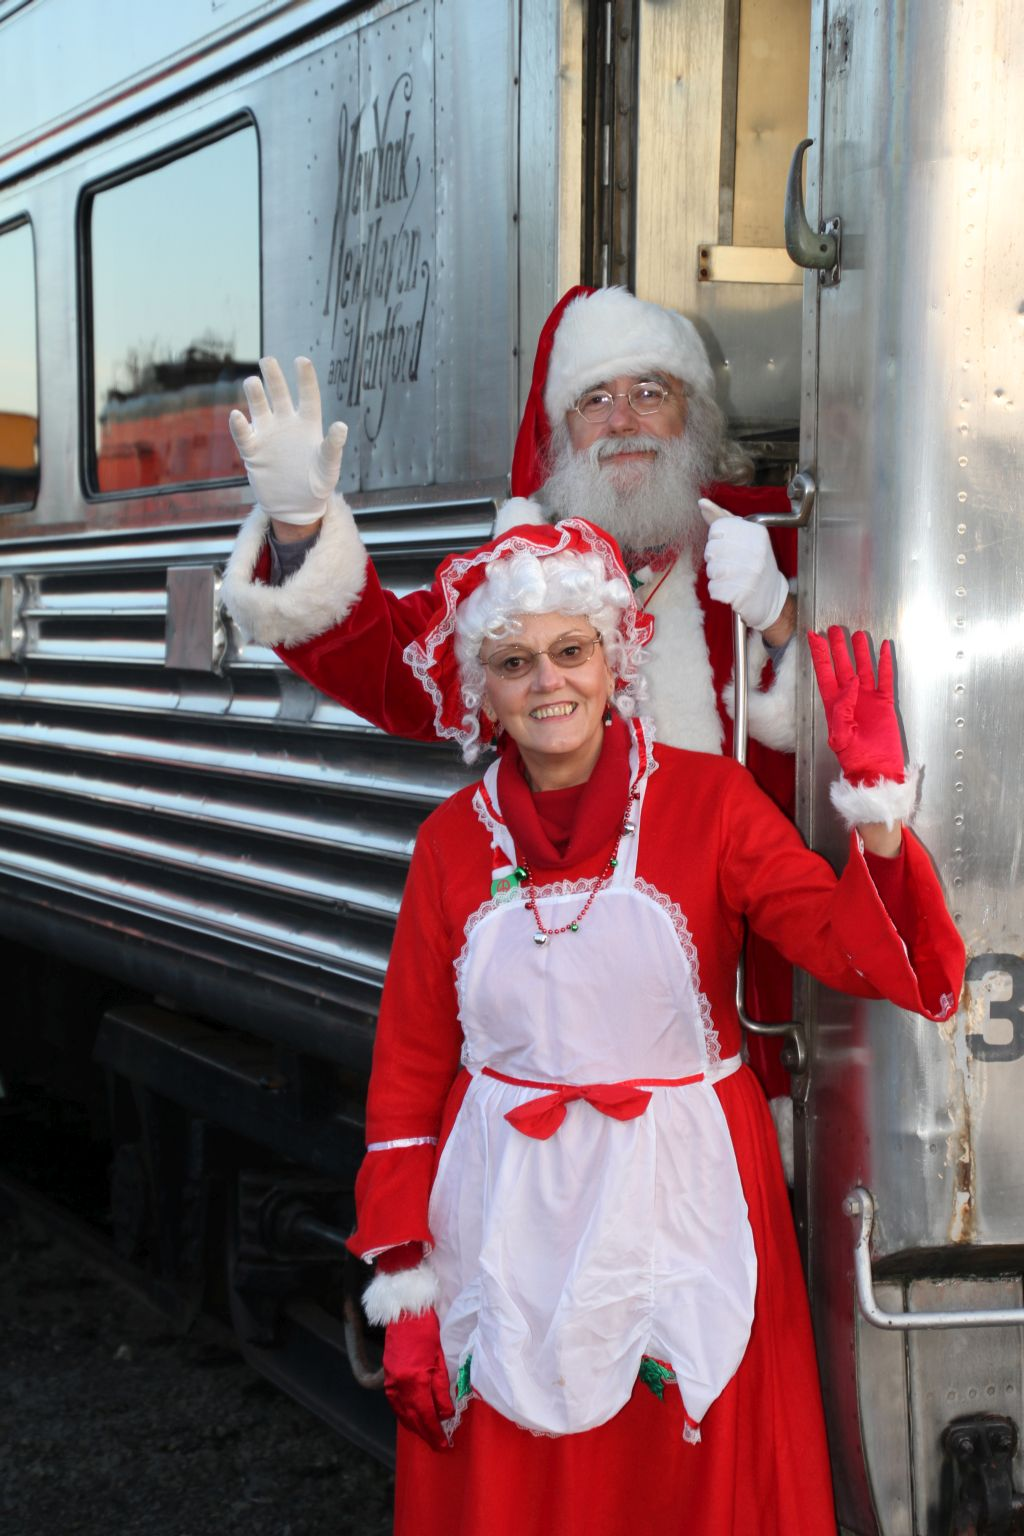 Santa and Mrs. Claus Dec. 3-17 Danbury Railway Museum